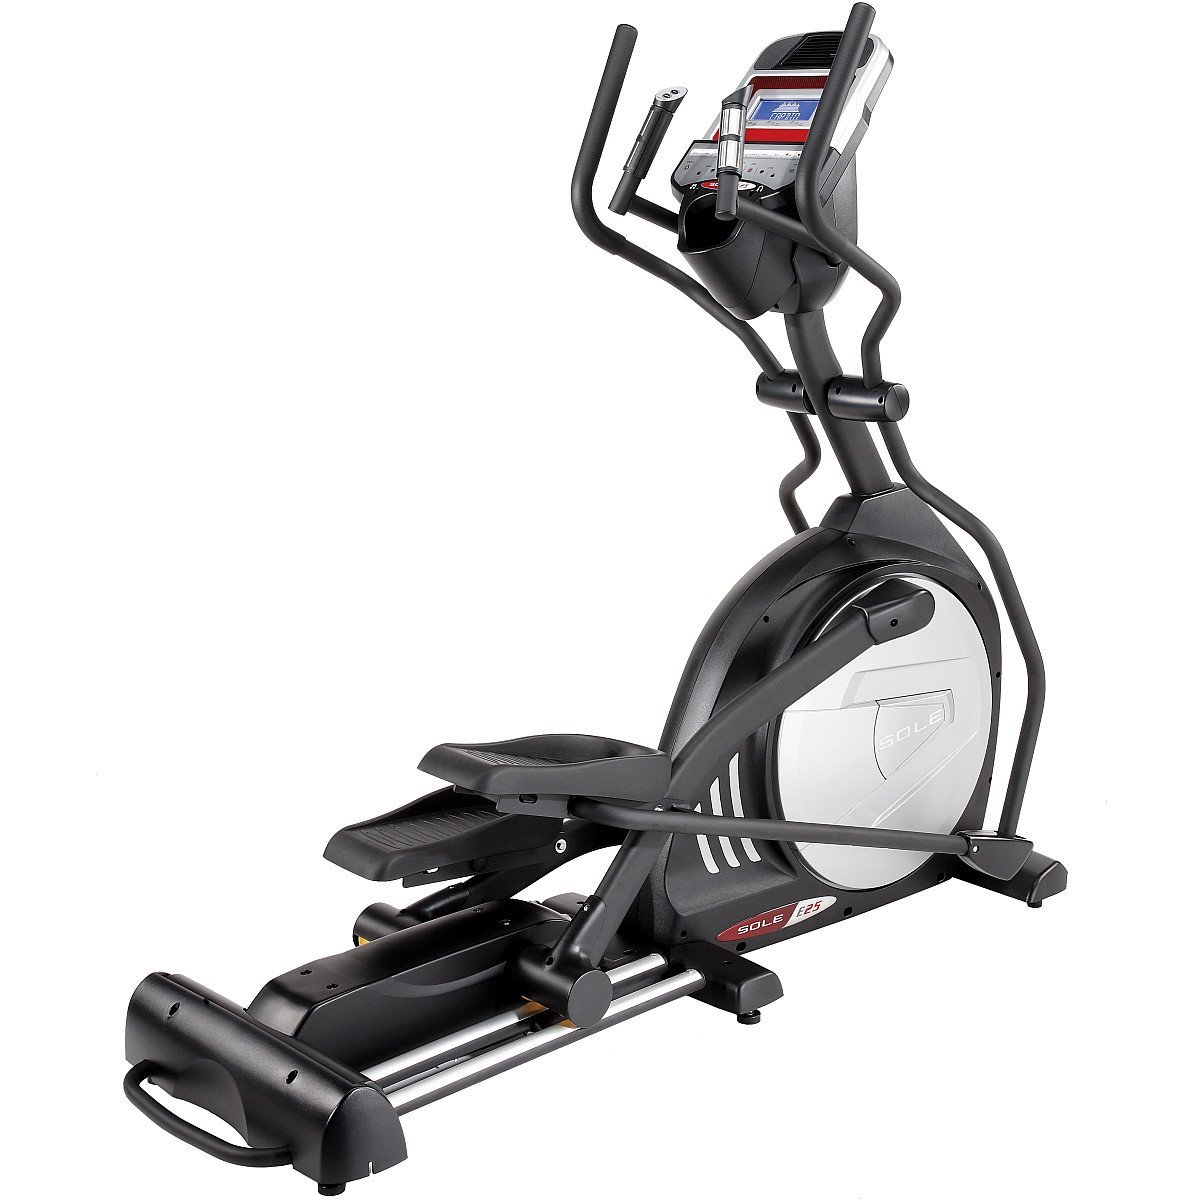 Sole E25 Elliptical Review- Find Out How It Performs In